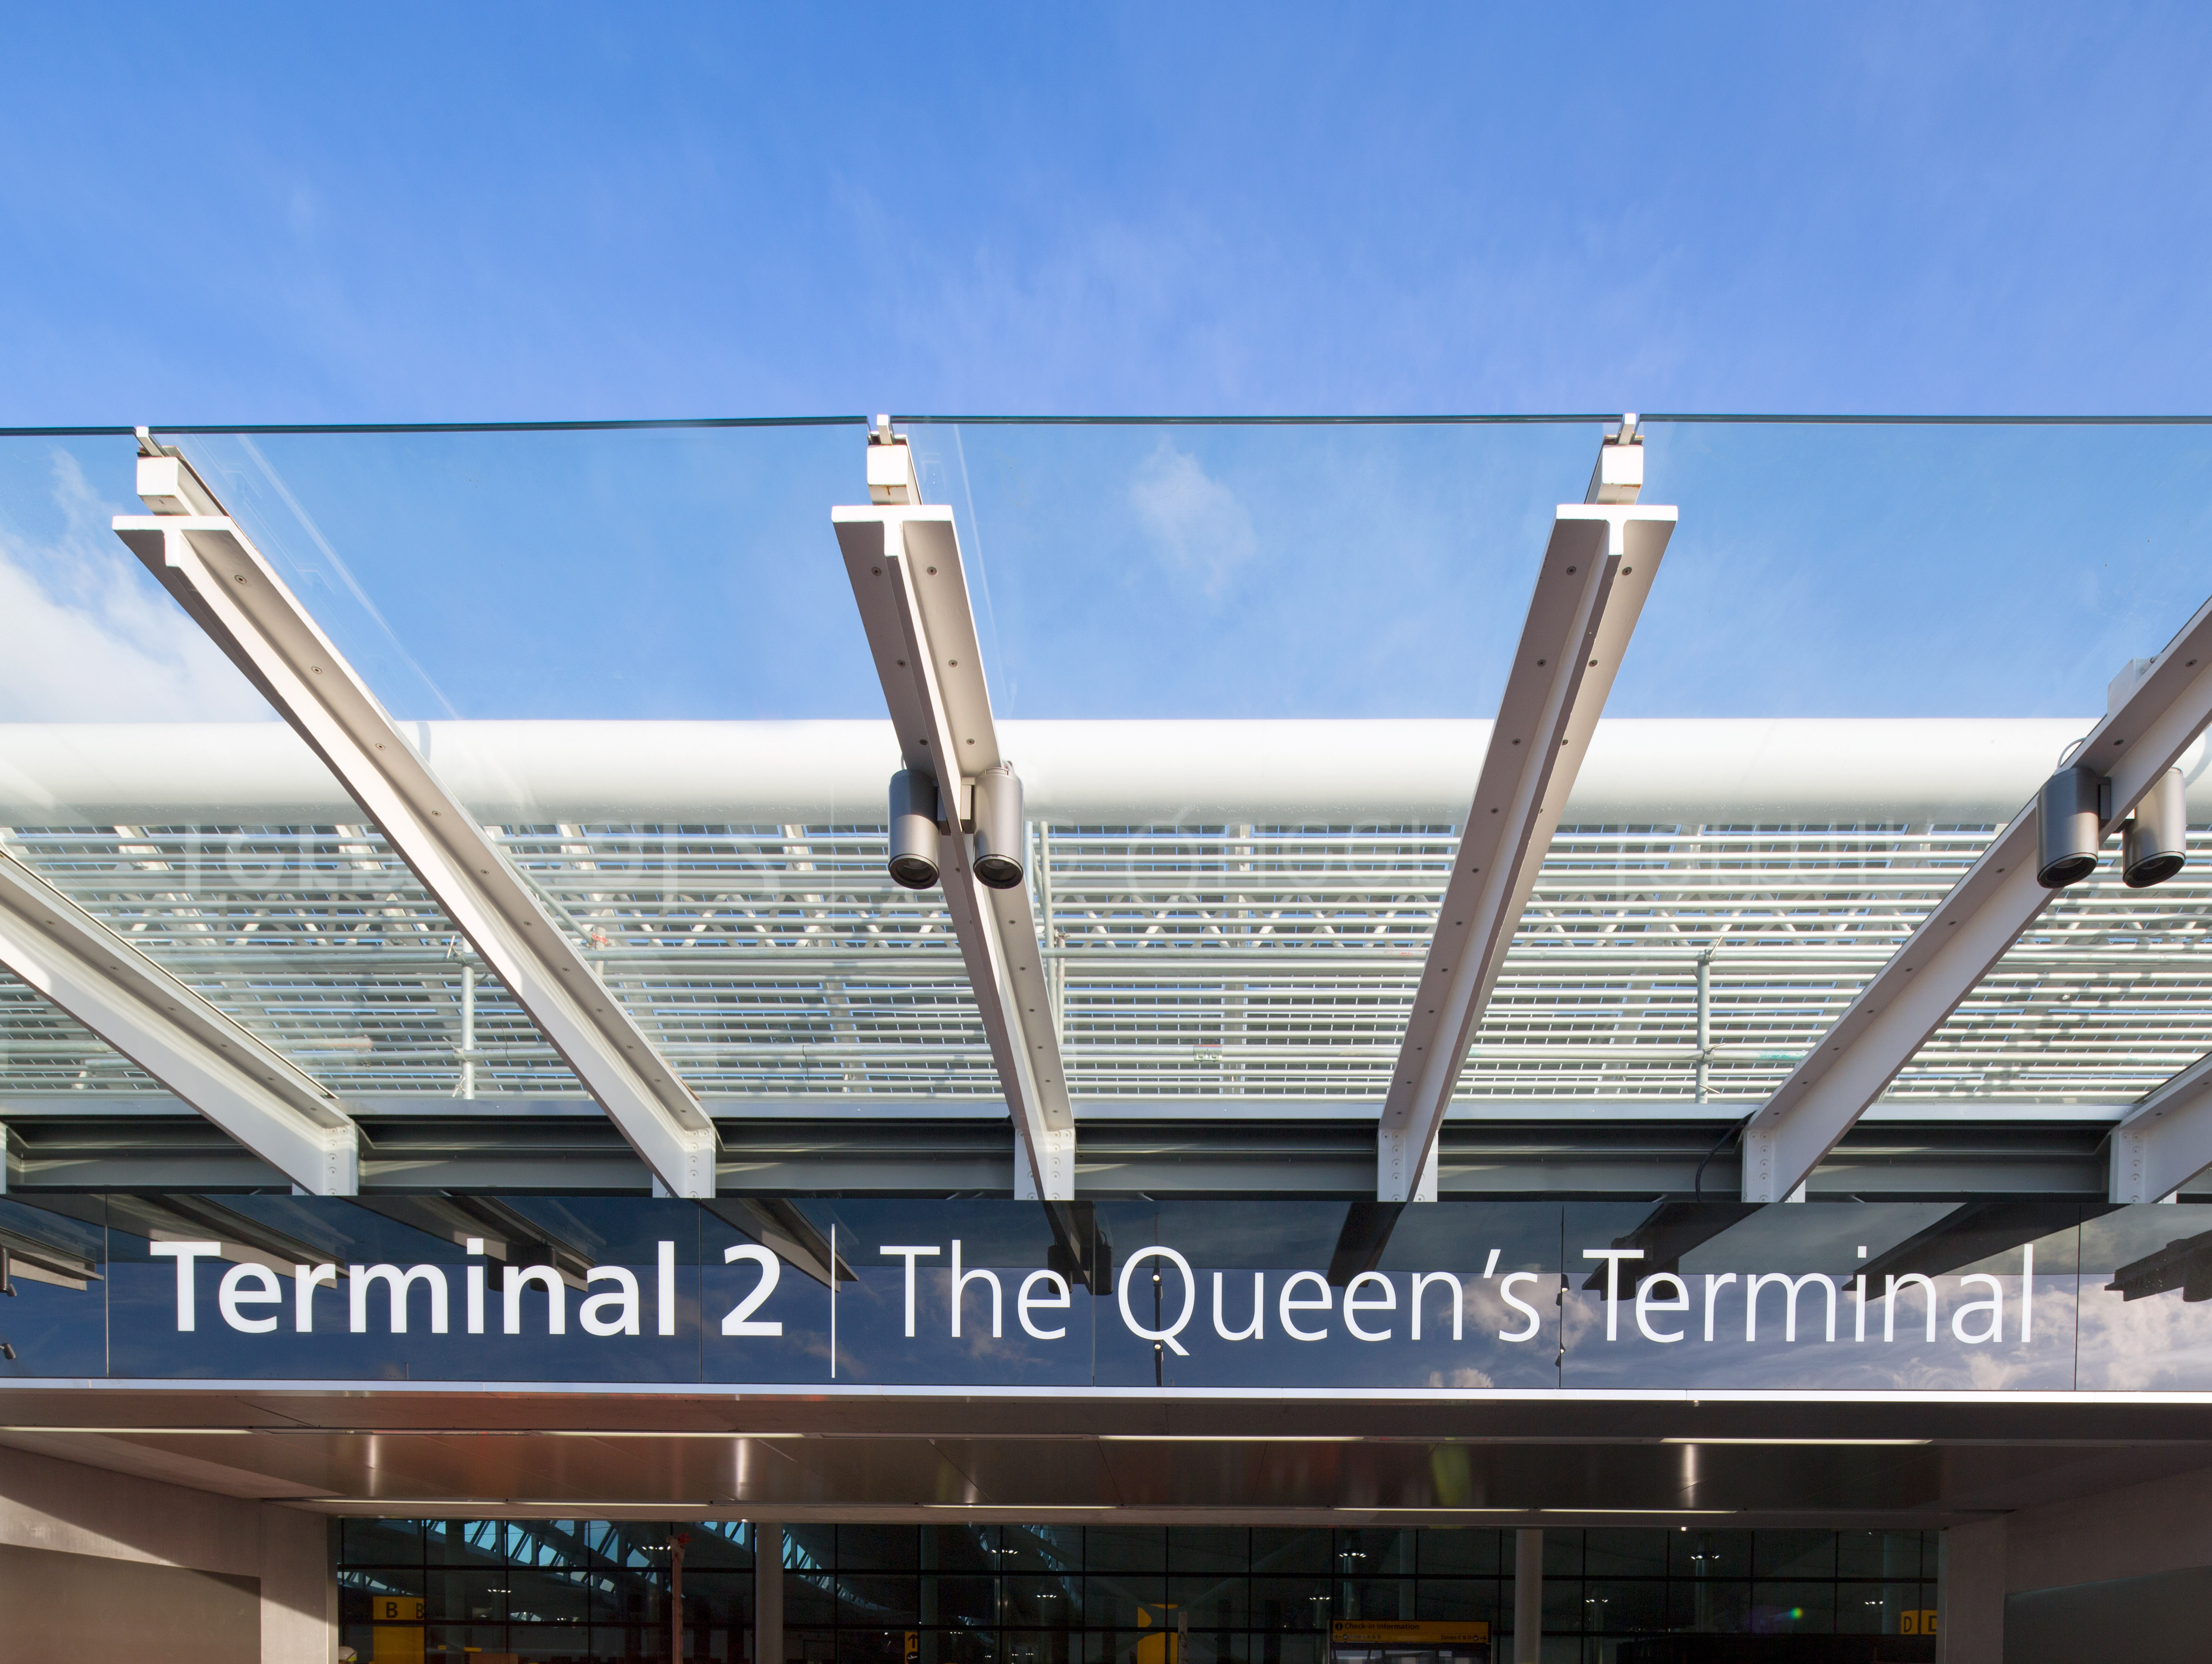 Heathrow Airport Terminal 2 - The Queen's Terminal Entrance